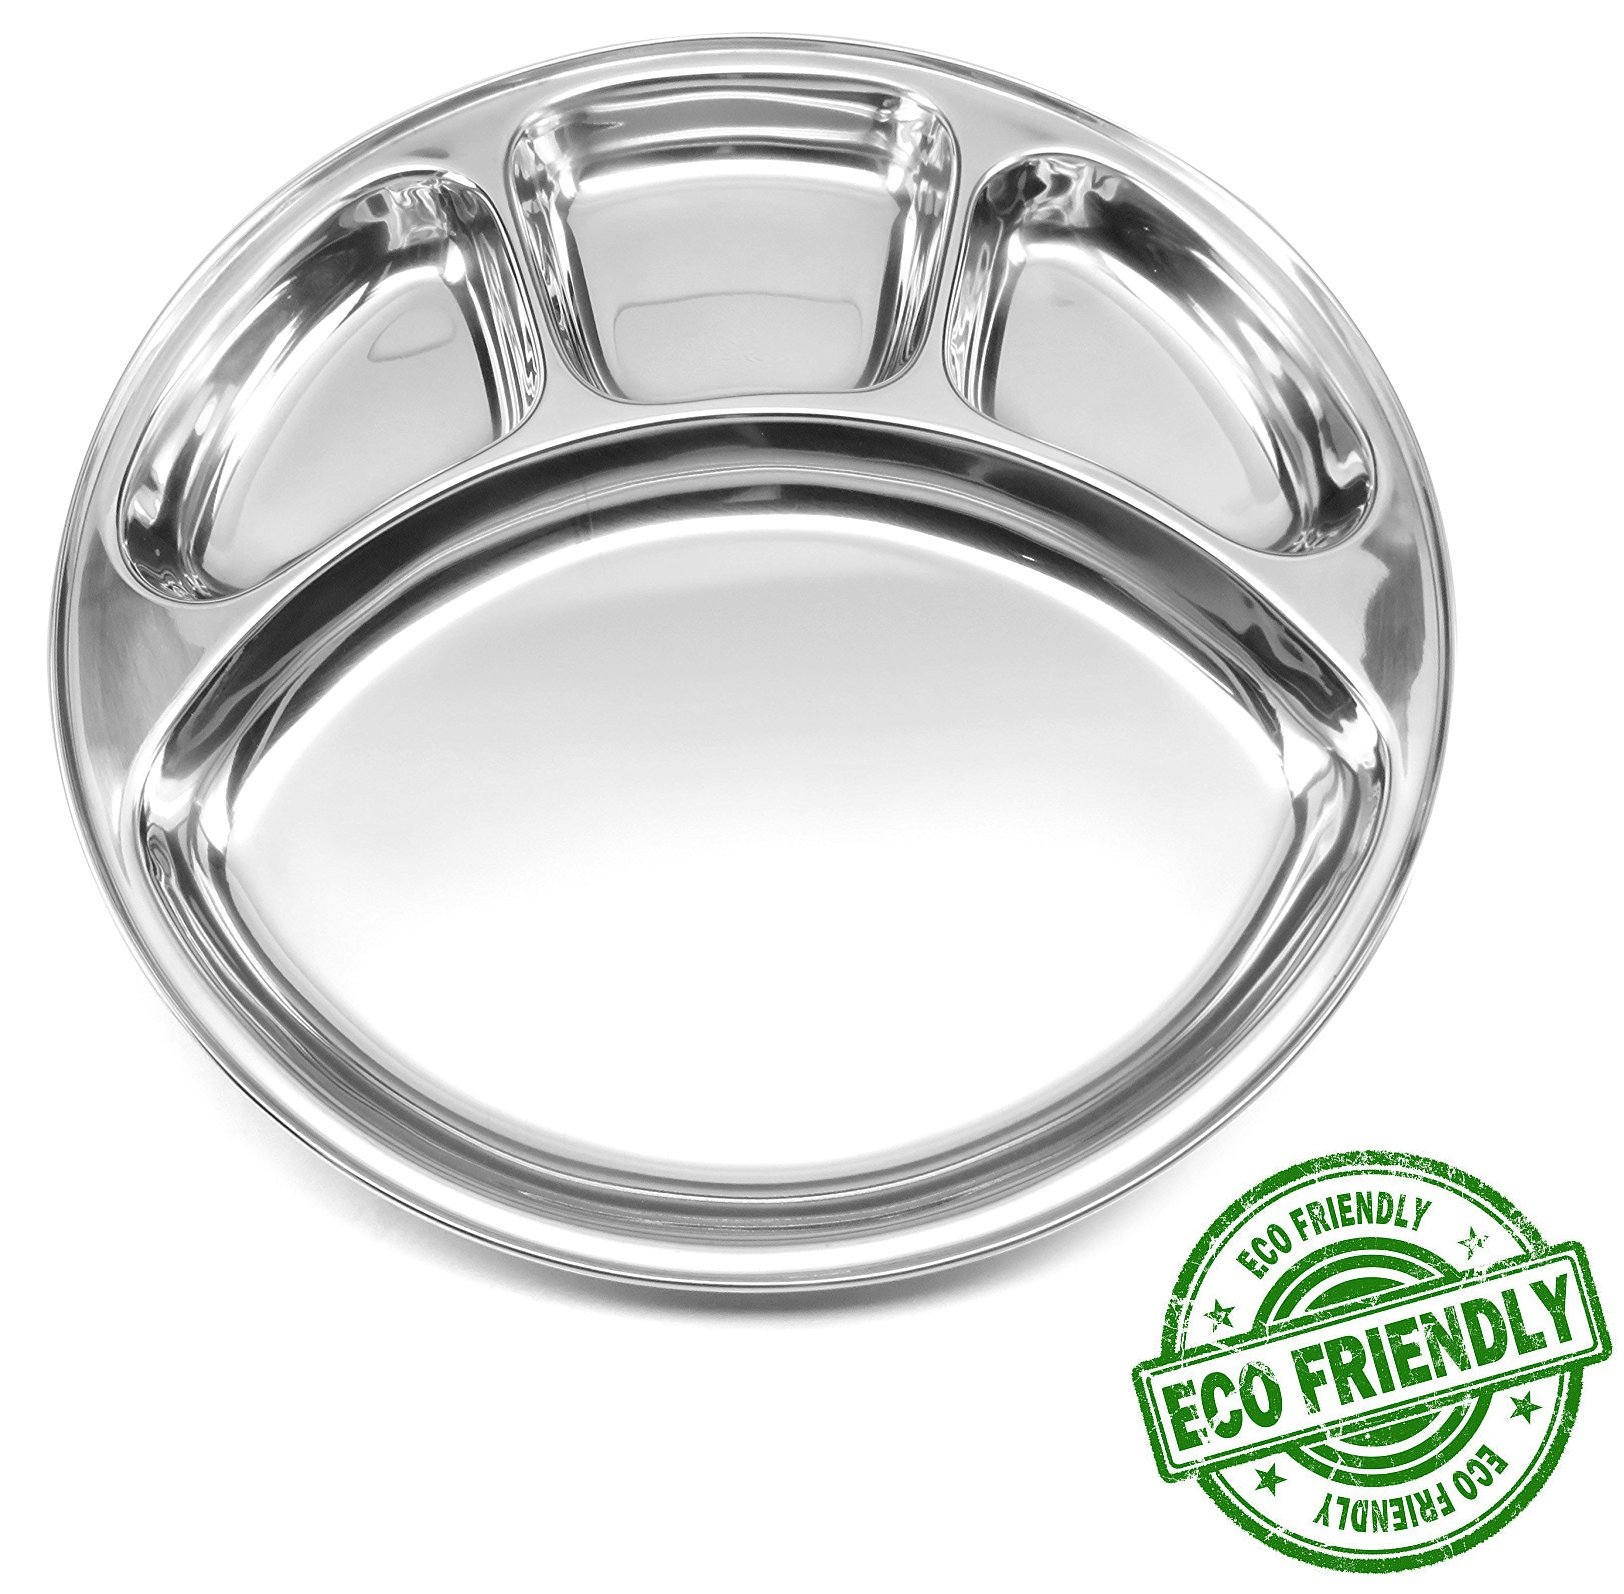 Lifestyle Block Stainless Steel Divided Plate: 4 Section Mirrored Round Plate for use as Plate or Platter - Small